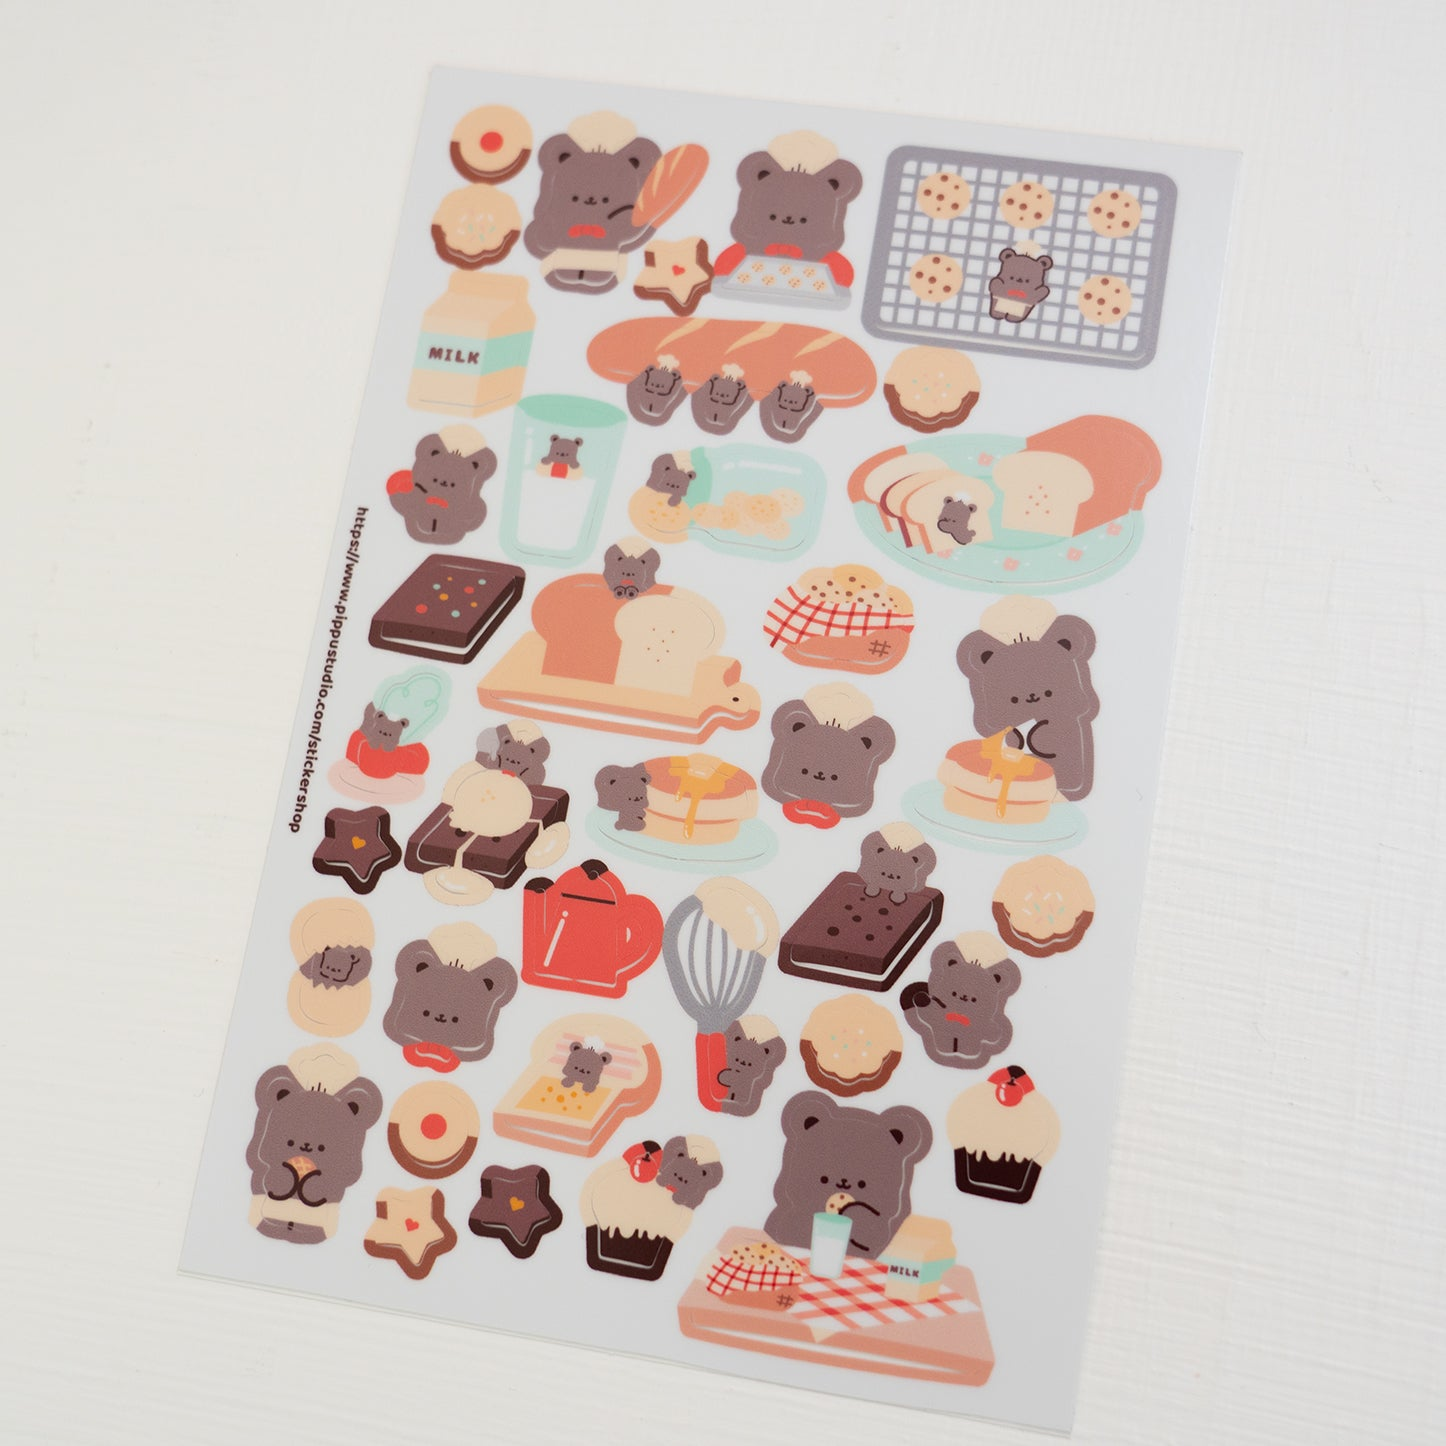 Bear bakery sticker sheet 1: bear bakery collection